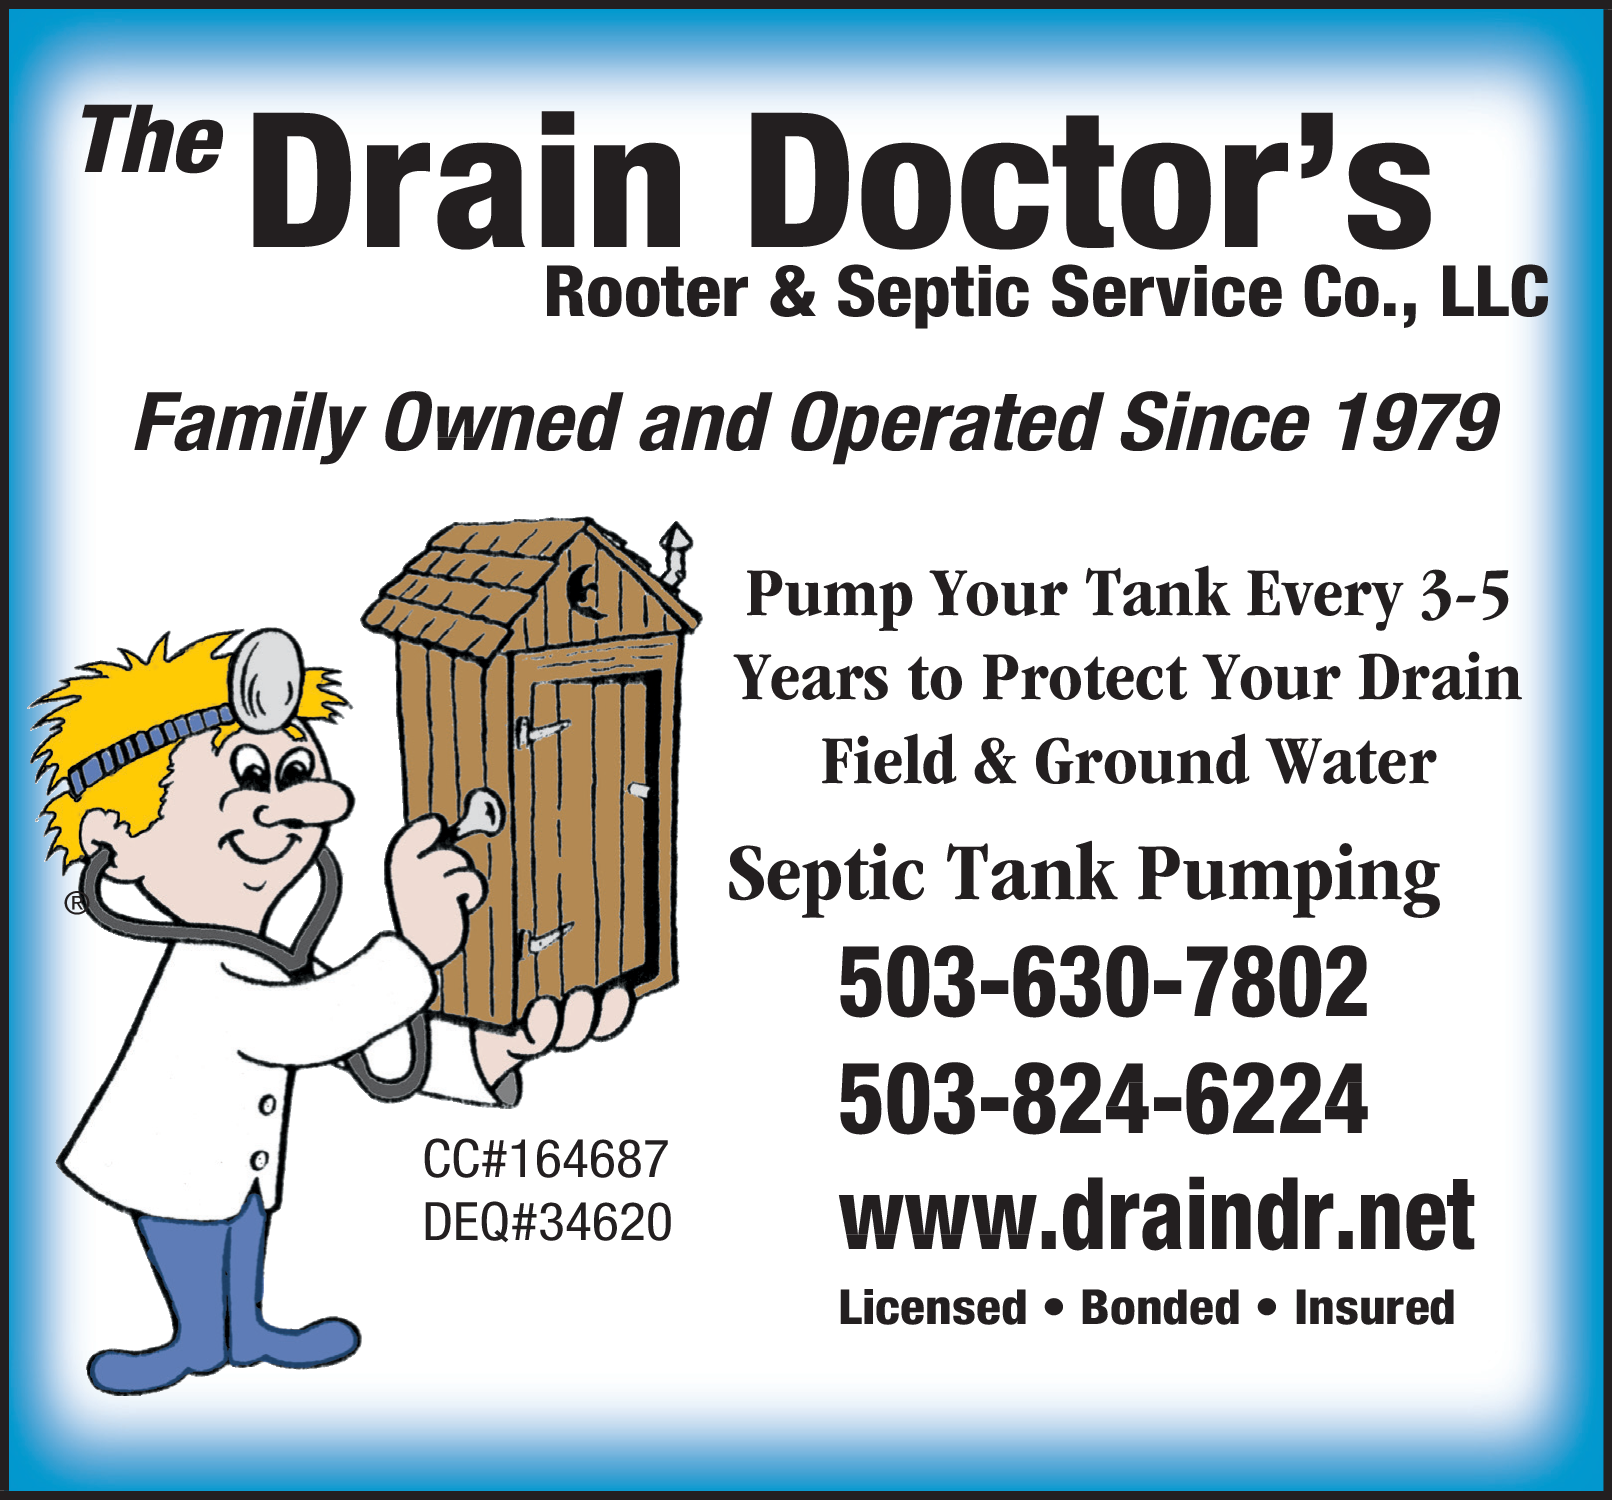 Septic Tank Pumping in Colton, OR, Cleaning Services - The Drain